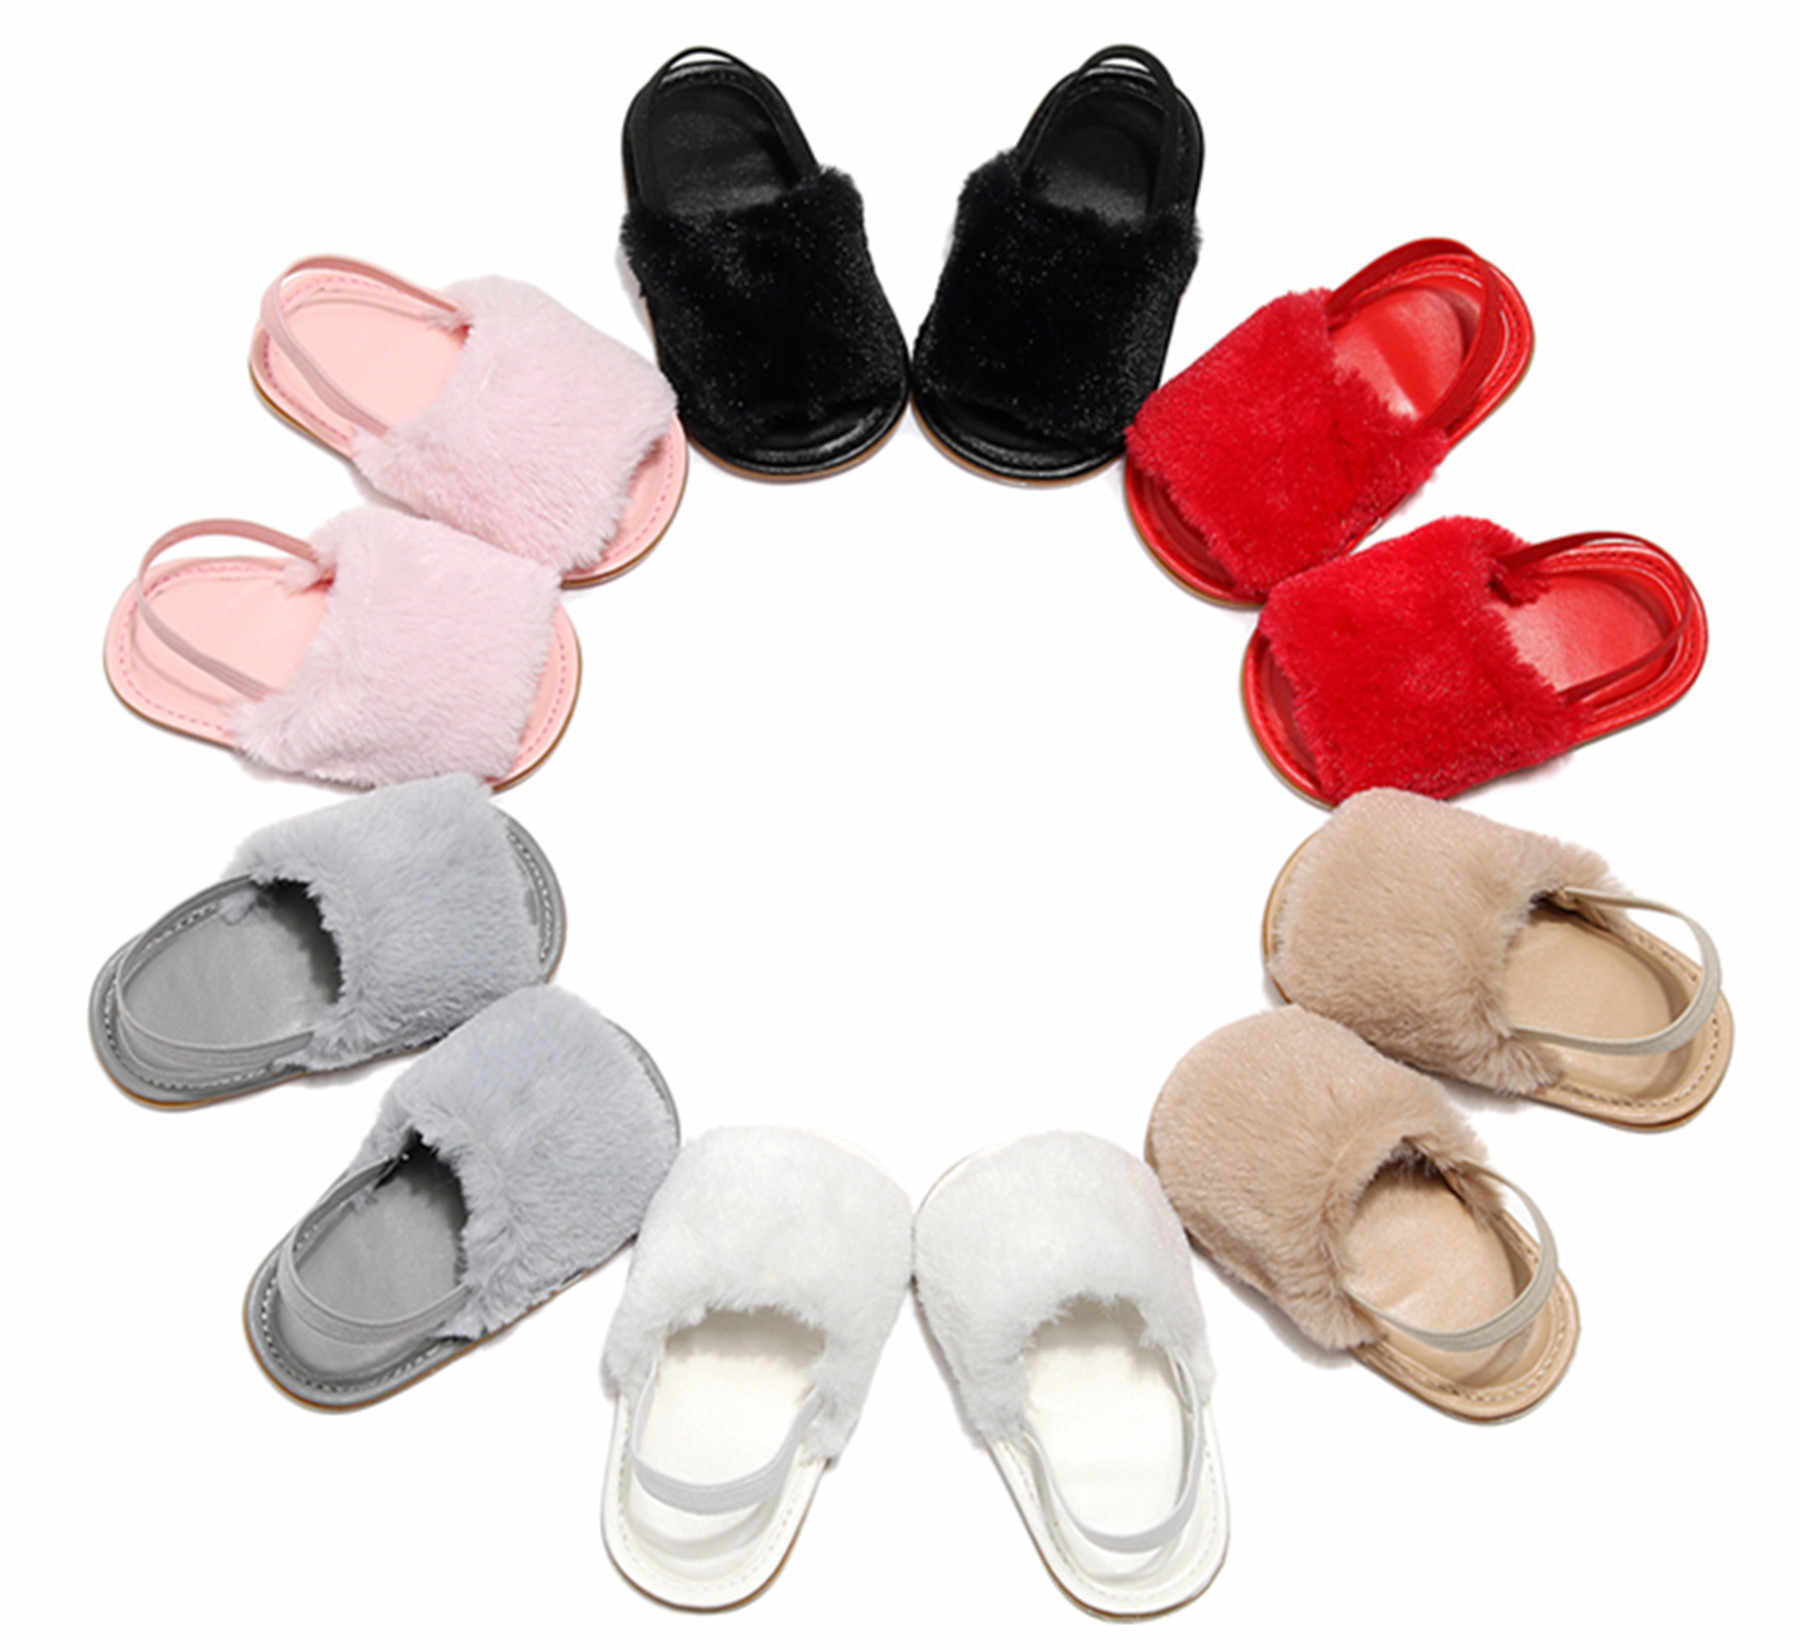 2019 Summer New Baby Sandals Fur Slippers Baby Girls Shoes Infant Toddler First Walking Shoe Baby Moccasins Hot Sale